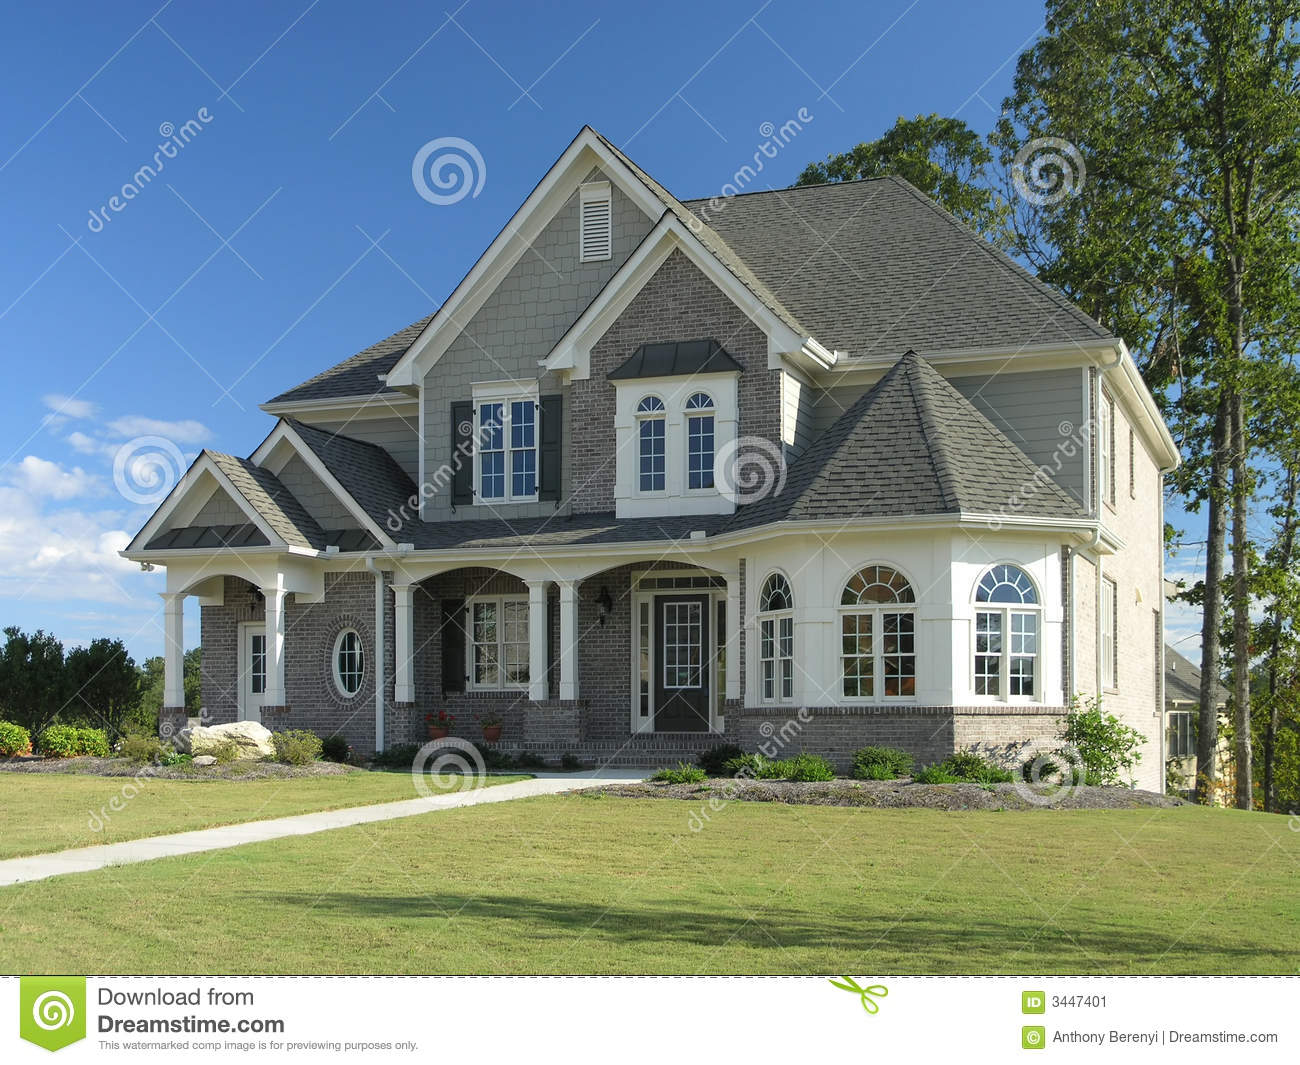 Home exterior with classic northwest charm royalty free for Luxury home exteriors